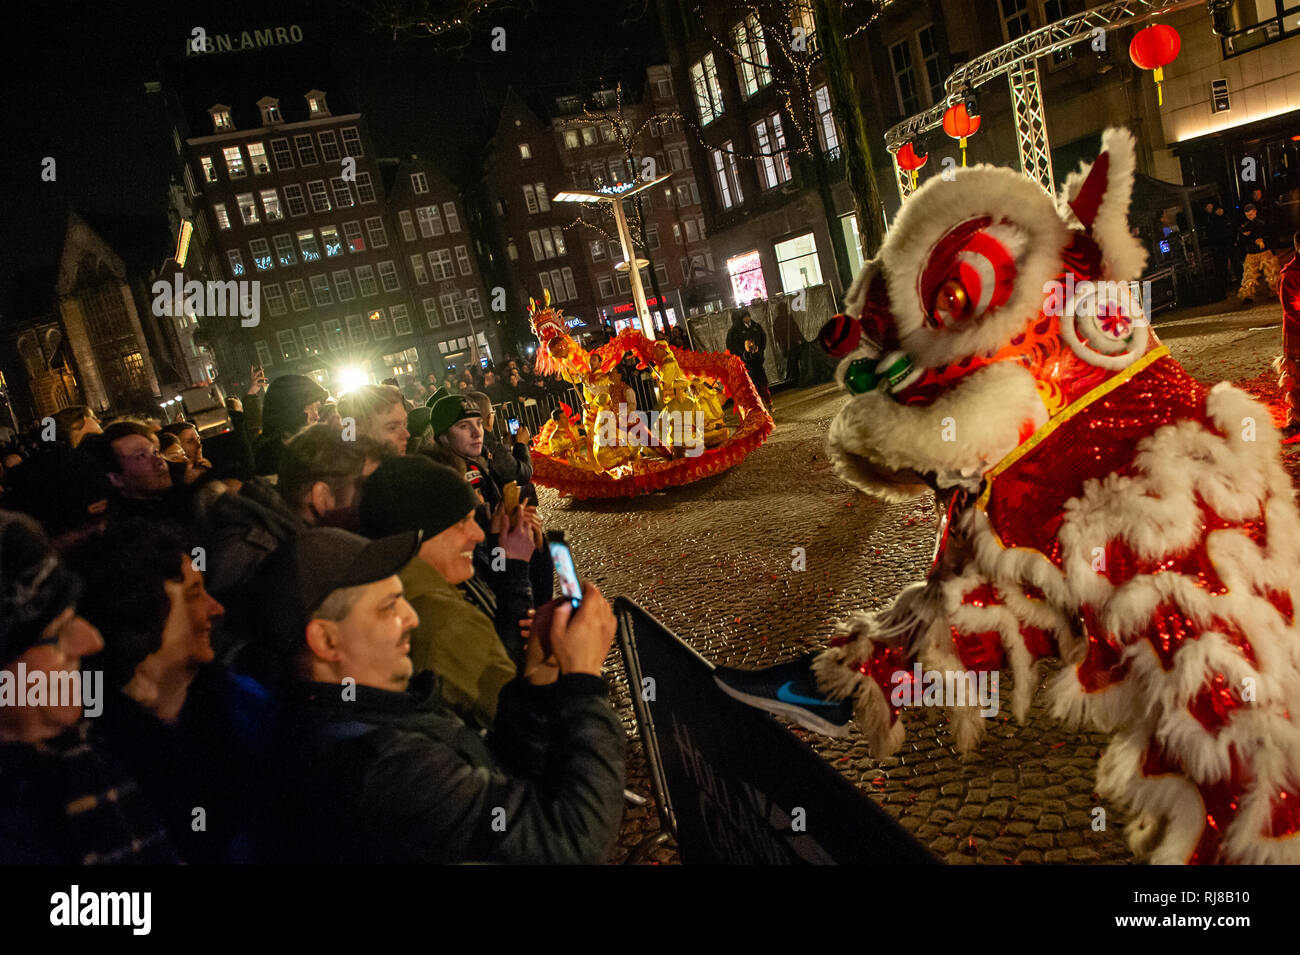 A Chinese dragon is seen interacting with some of the public